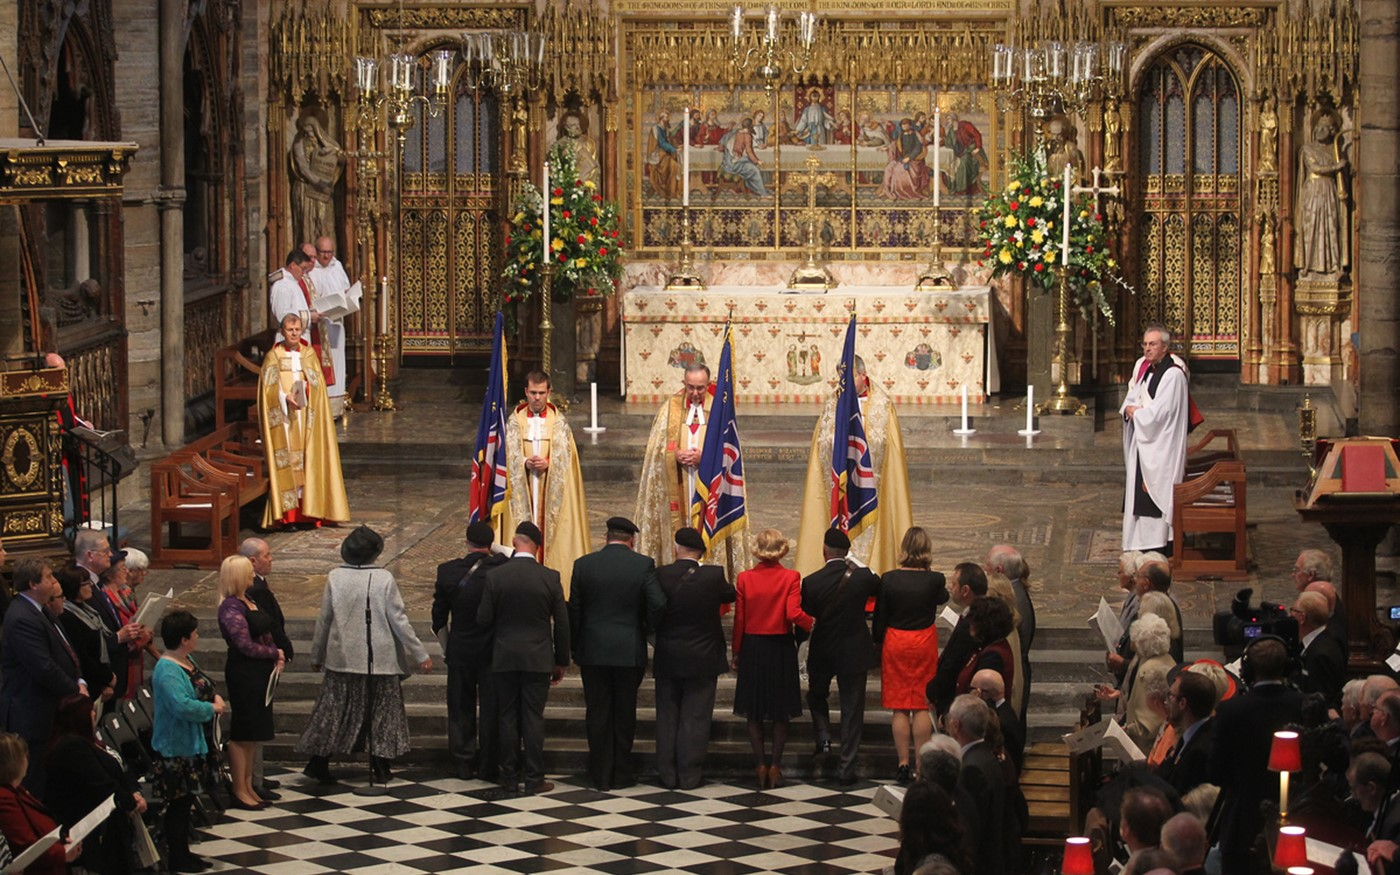 A Service of Thanksgiving to mark the Centenary of Blind Veterans UK was held at Westminster Abbey at Noon on Tuesday 6th October 2015